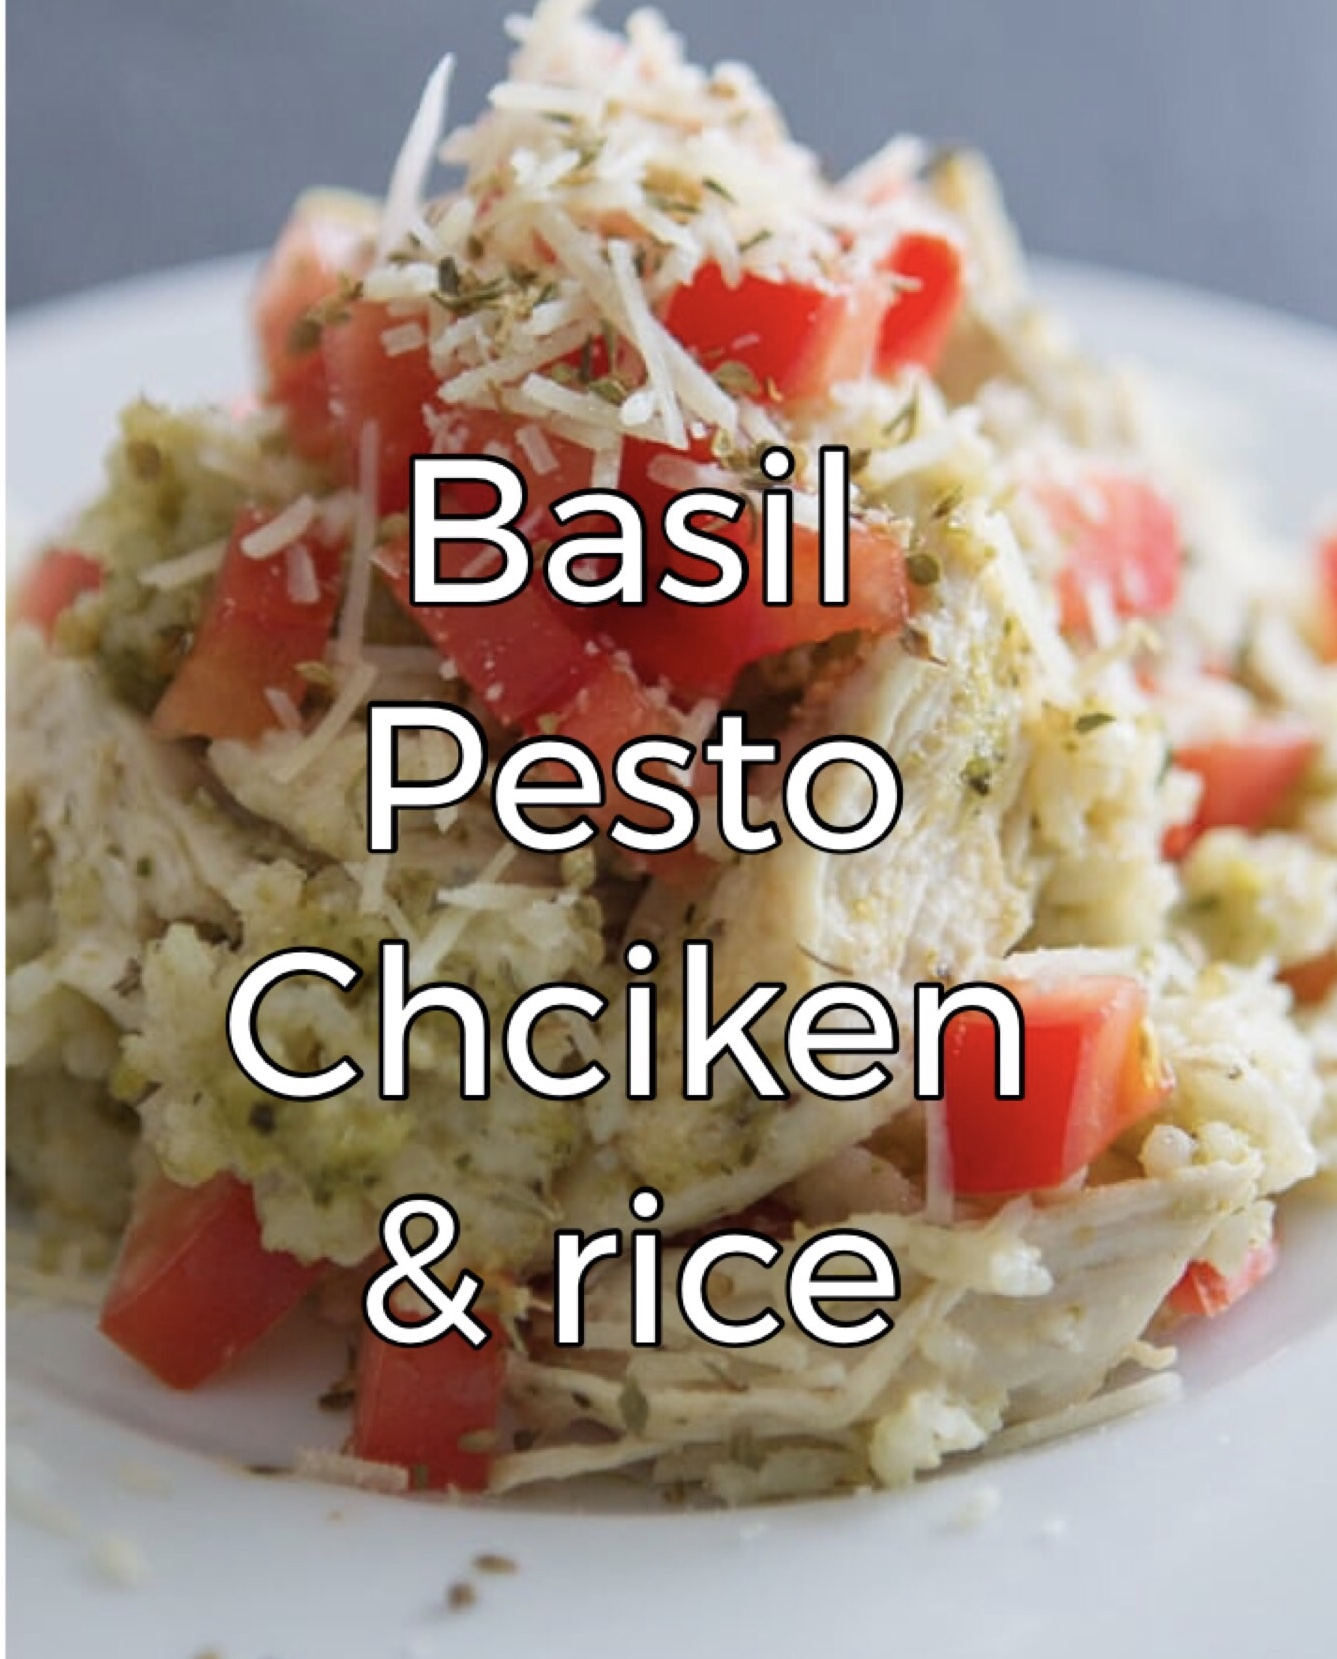 - Add some basil pesto, Parmesan cheese, roasted asparagus and cherry tomatoes to your chopped chicken and cooked rice and enjoy this meal either hot or cold!